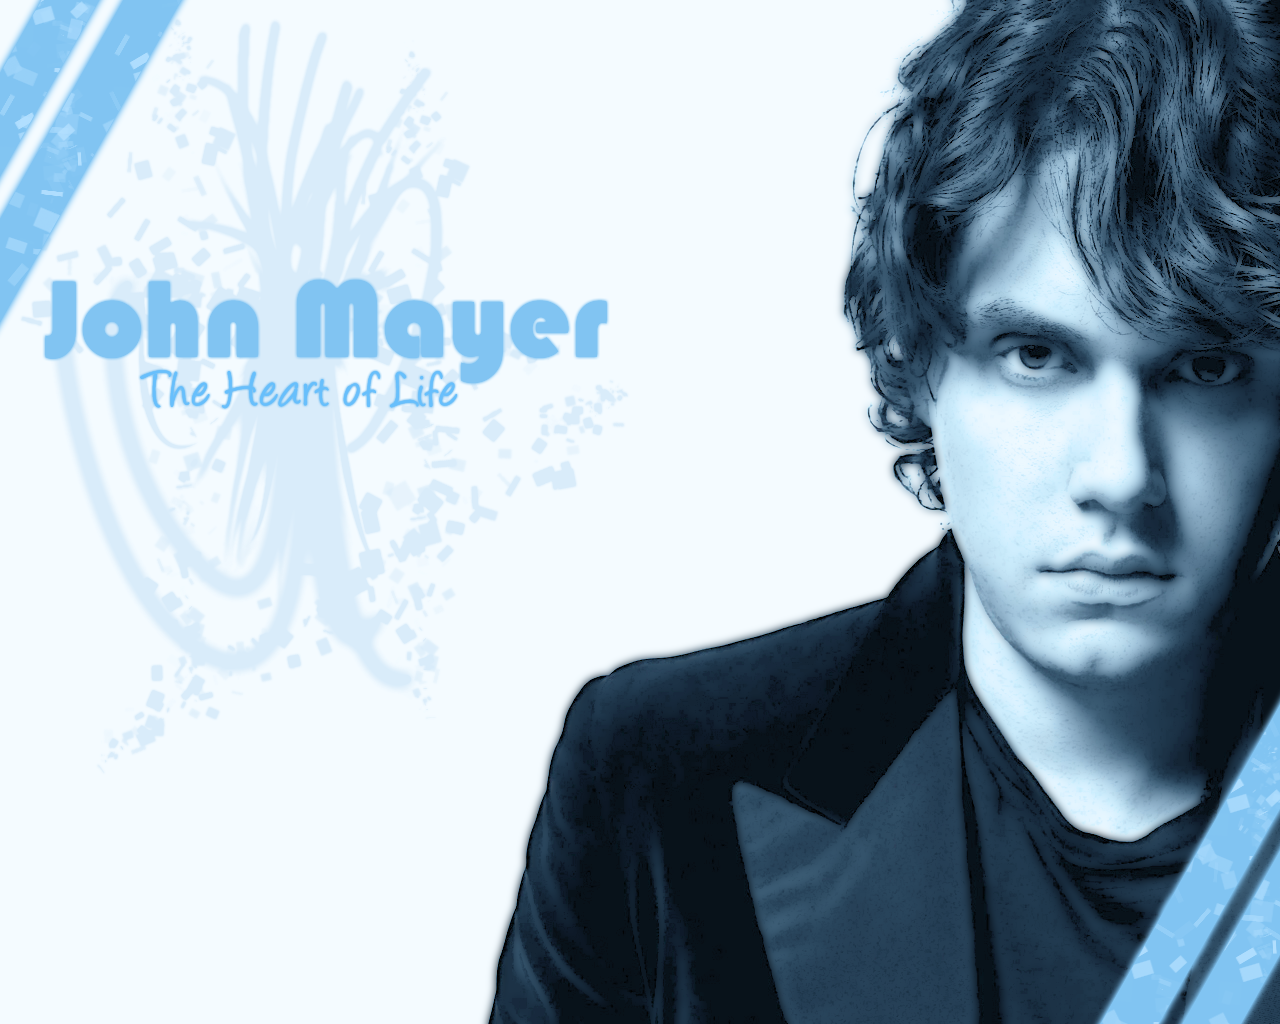 John Mayer Wallpaper: John Mayer Wallpaper